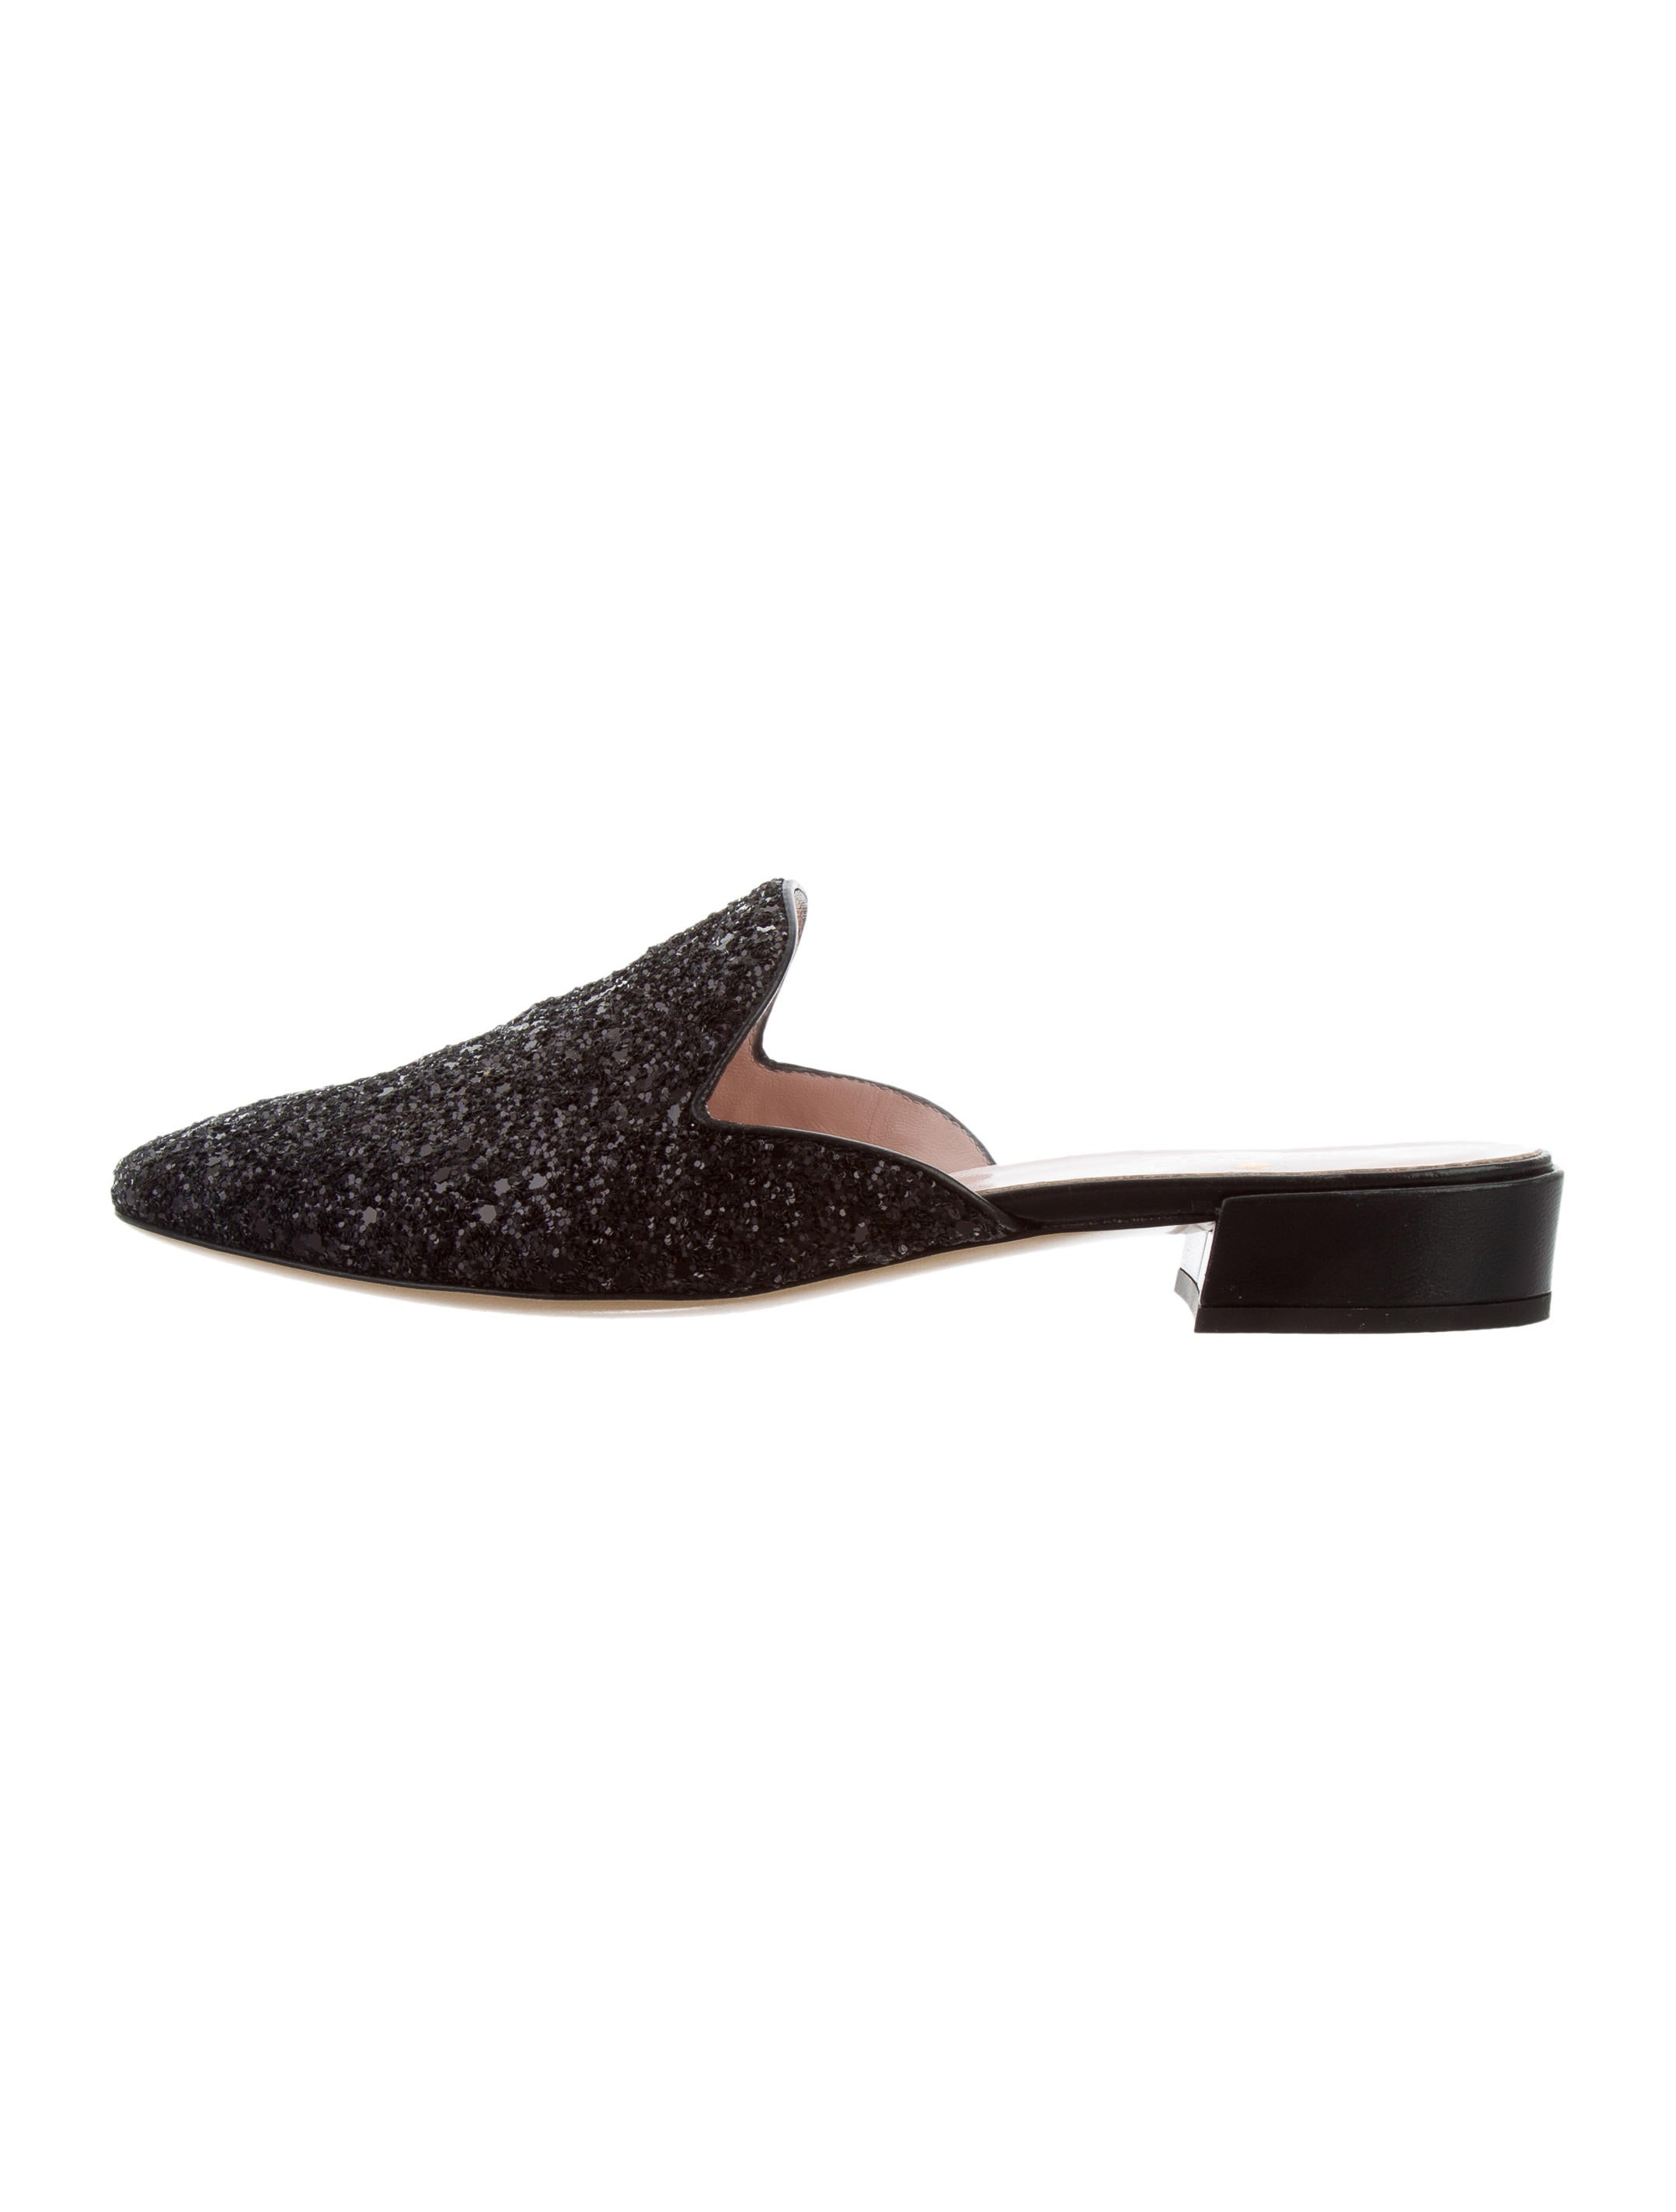 Kate Spade New York Glitter Round-Toe Mules fast delivery online clearance clearance cheap sale with credit card nicekicks cheap price tumblr online taHhgm